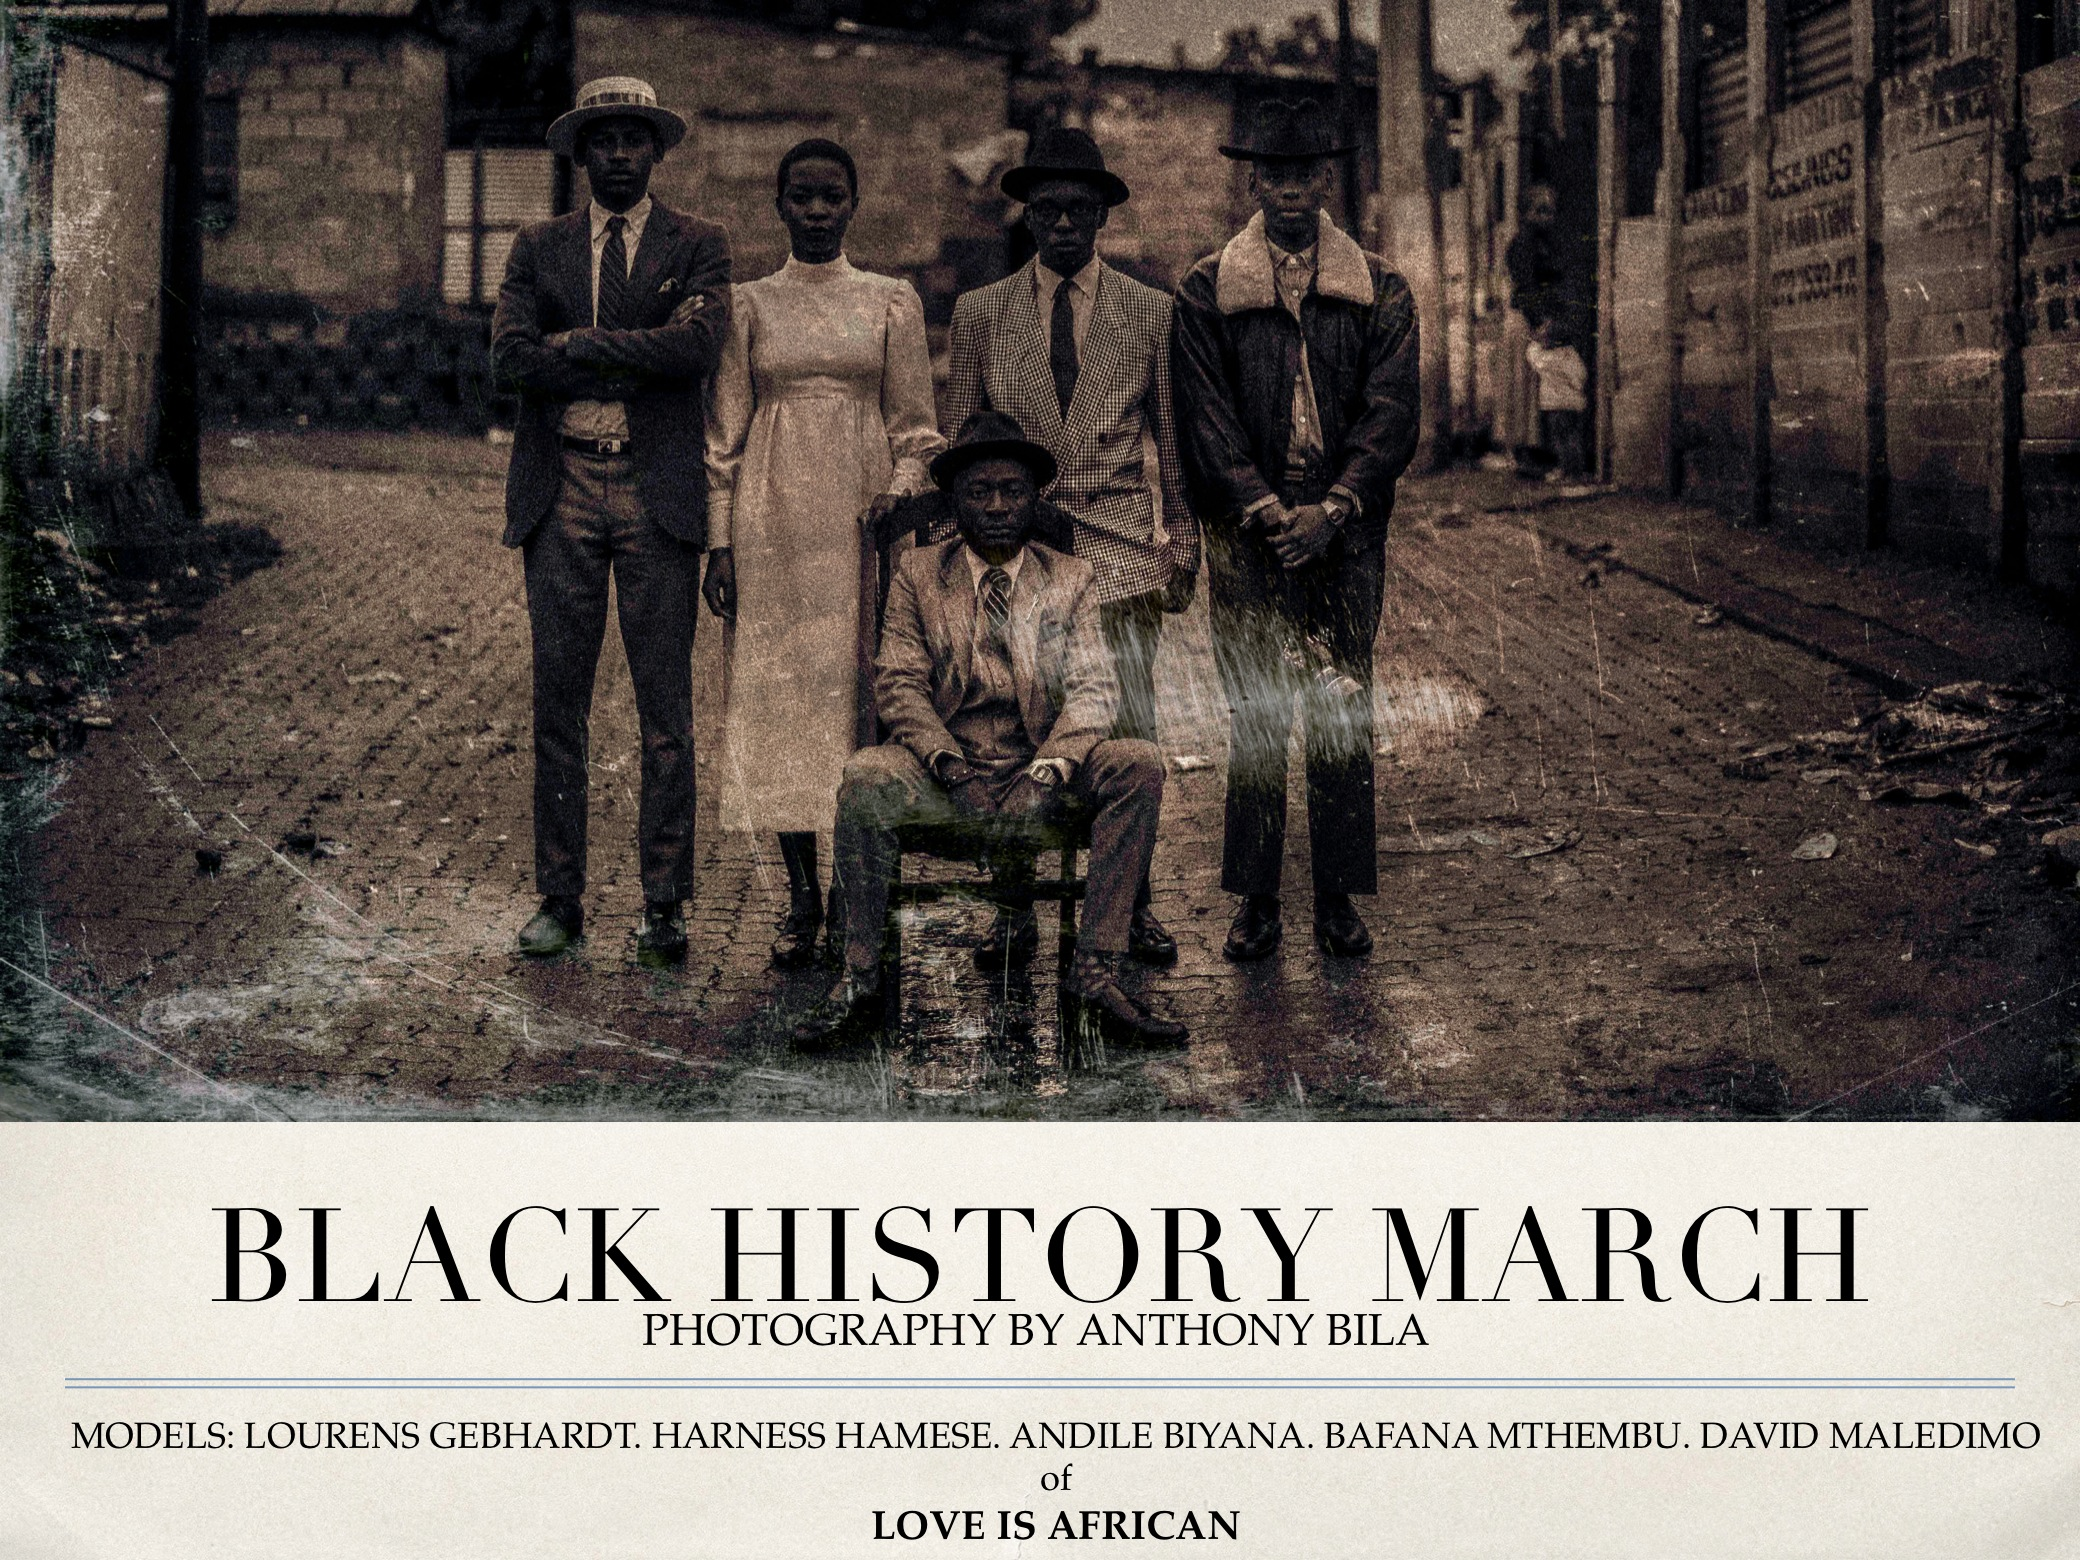 Black History March by Anthony Bila